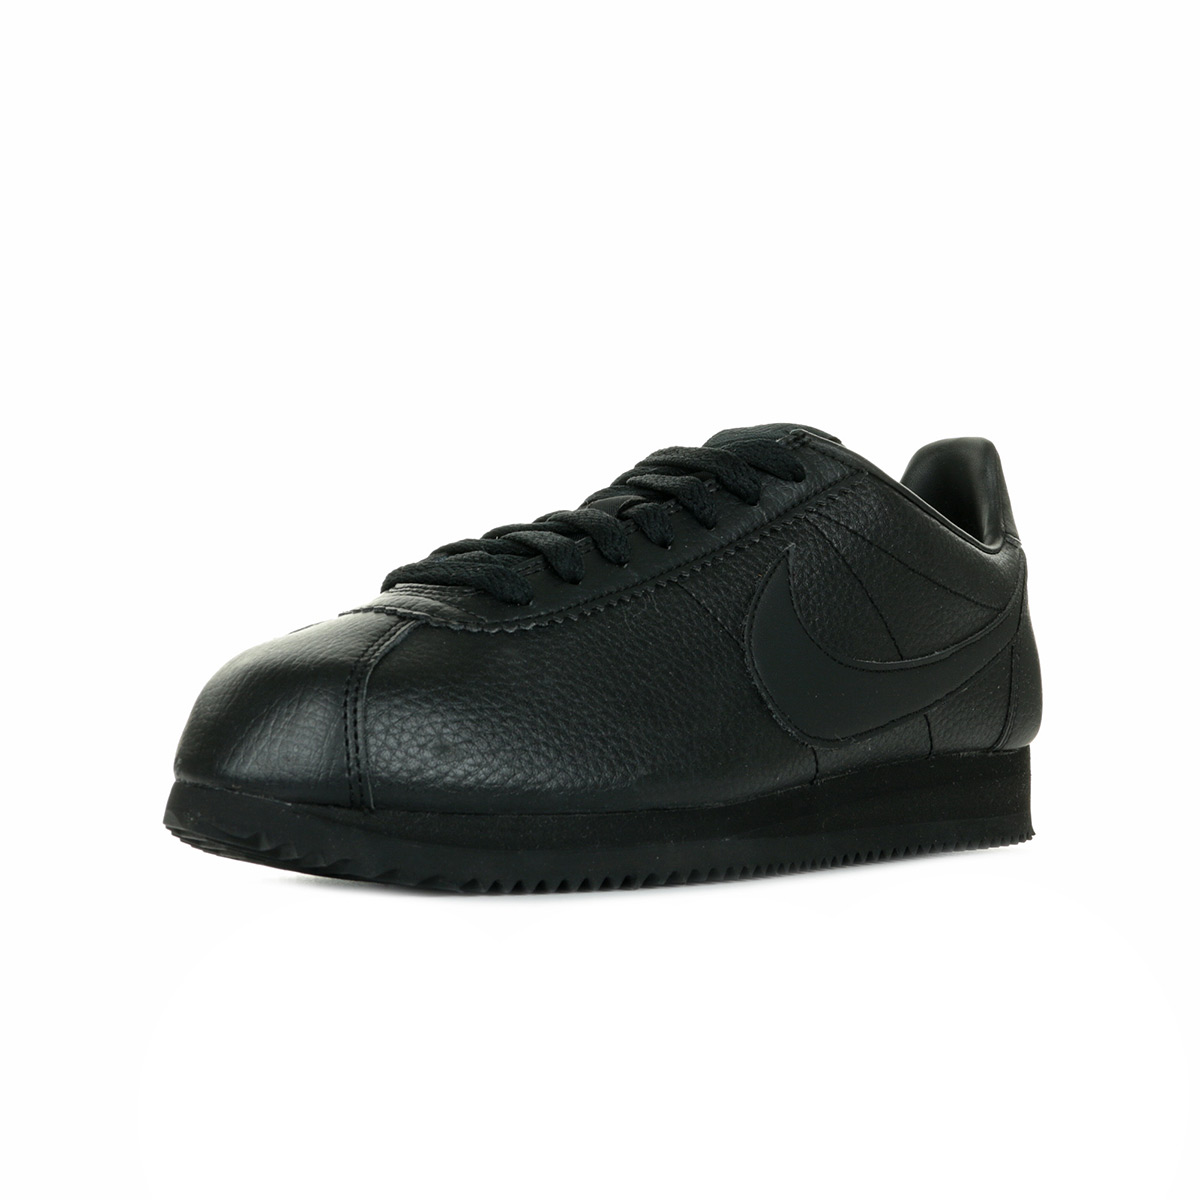 ... Chaussures-Baskets-Nike-homme-Classic-Cortez-Leather-taille-